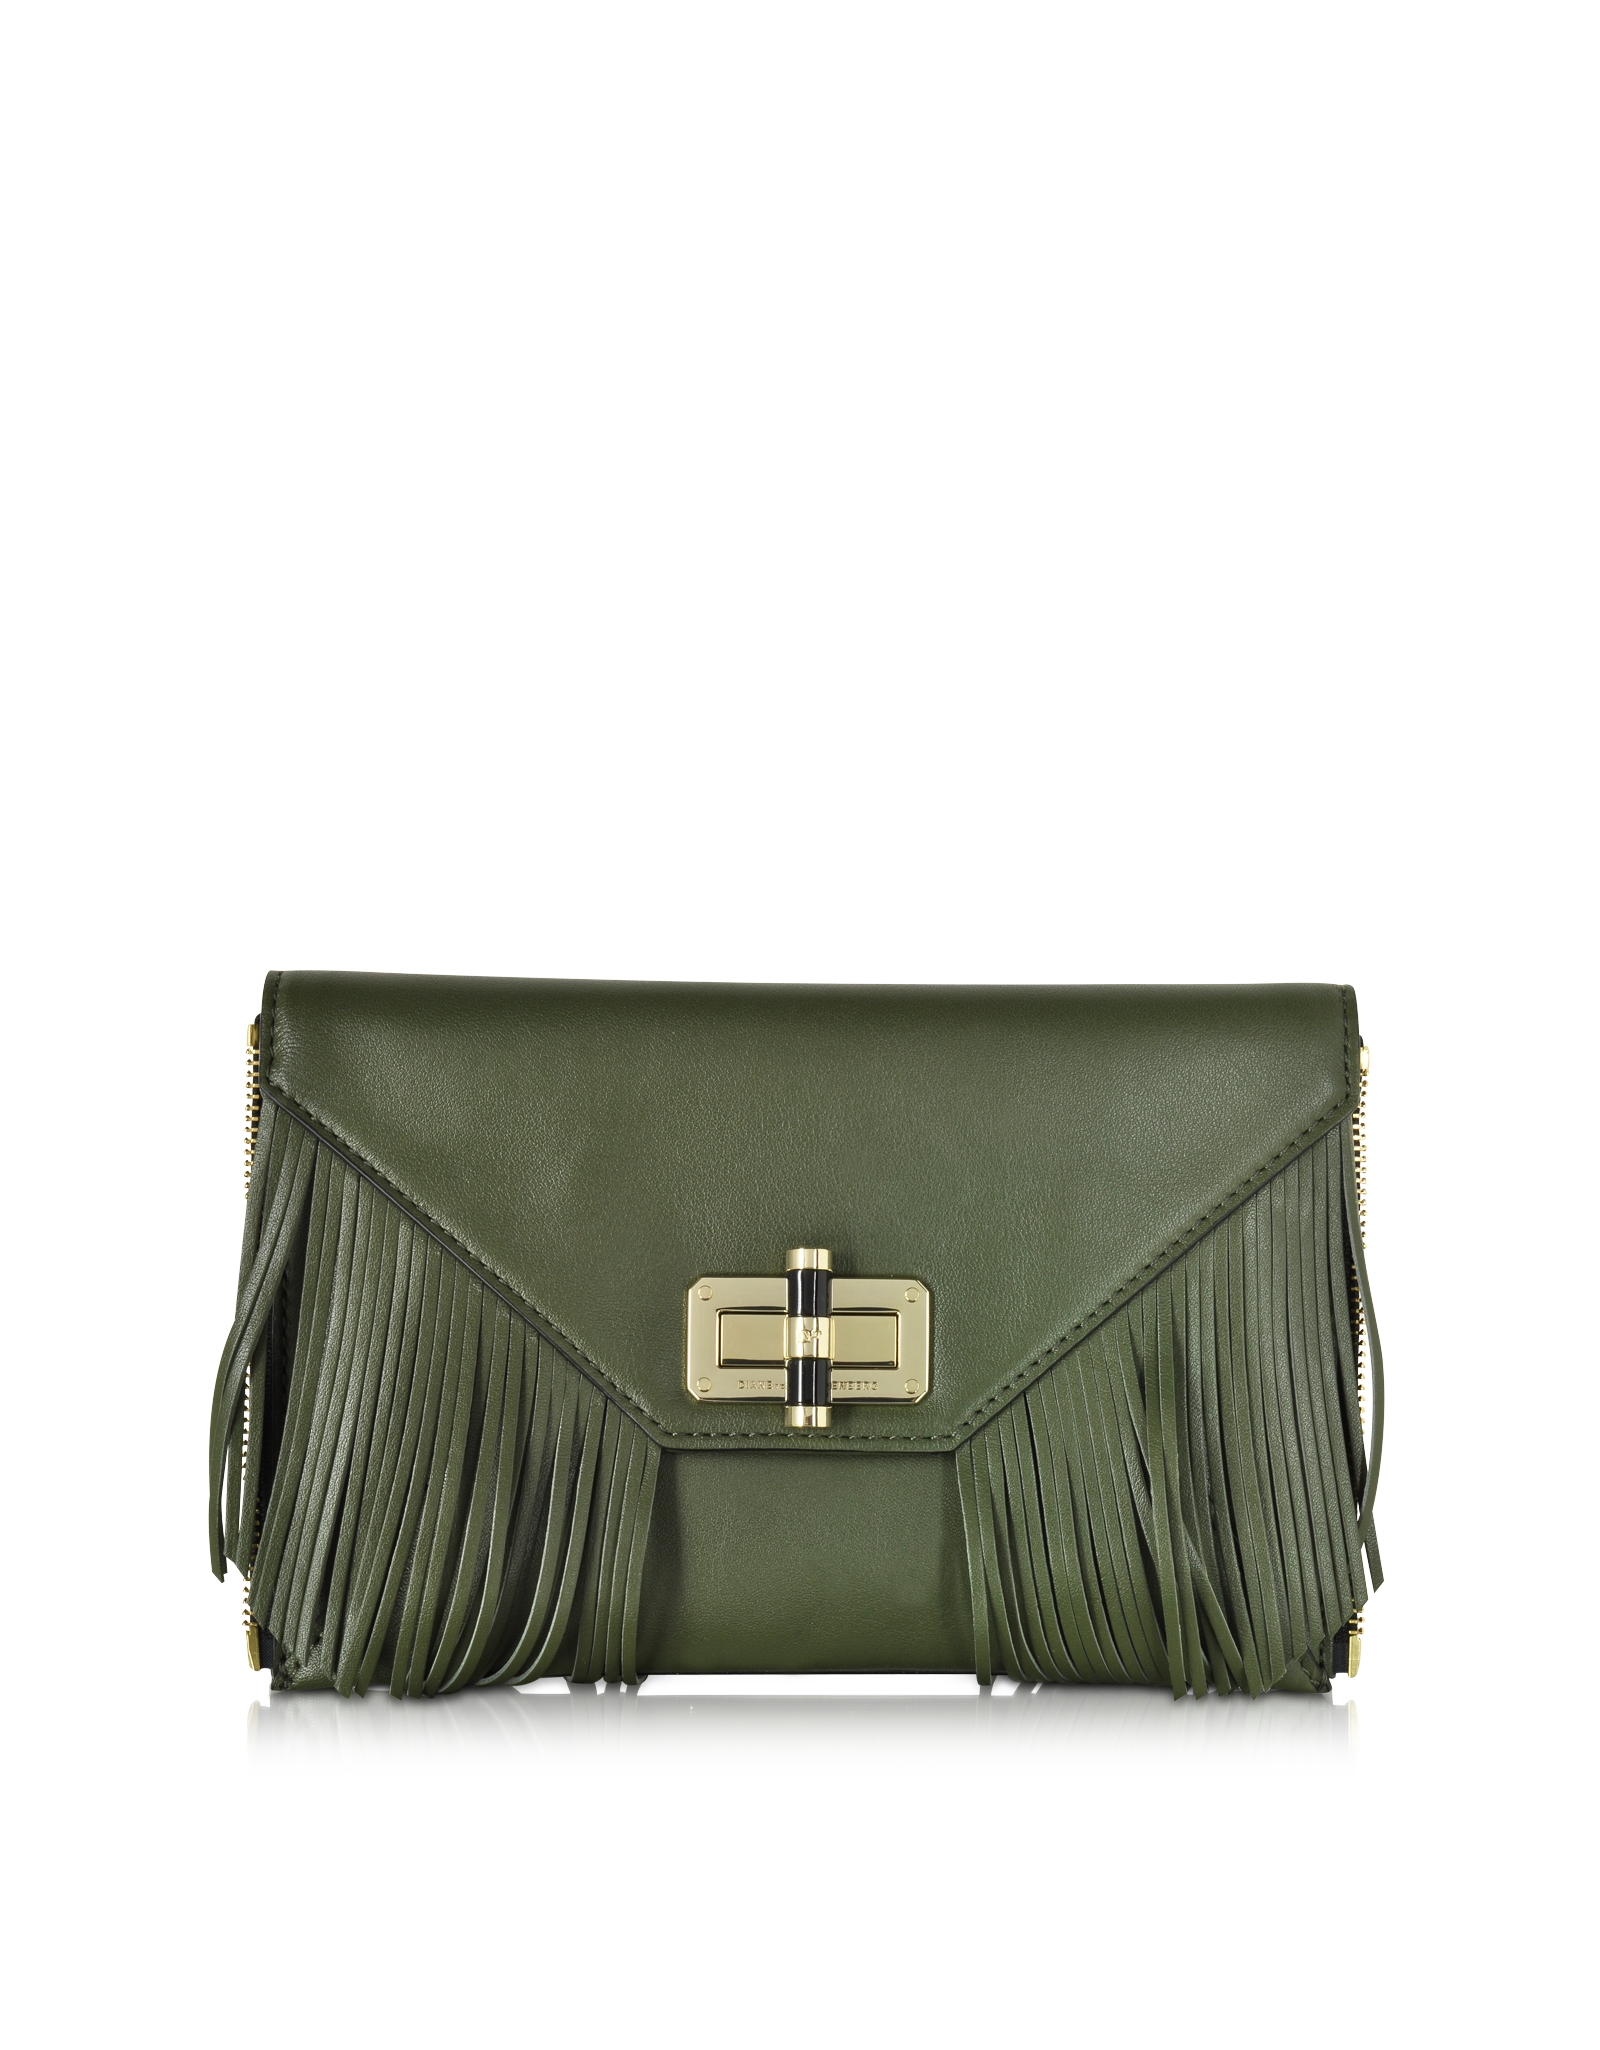 439cc6d5e9158 Diane von Furstenberg Agent Riley Fringe Zip On Leather Clutch in ...